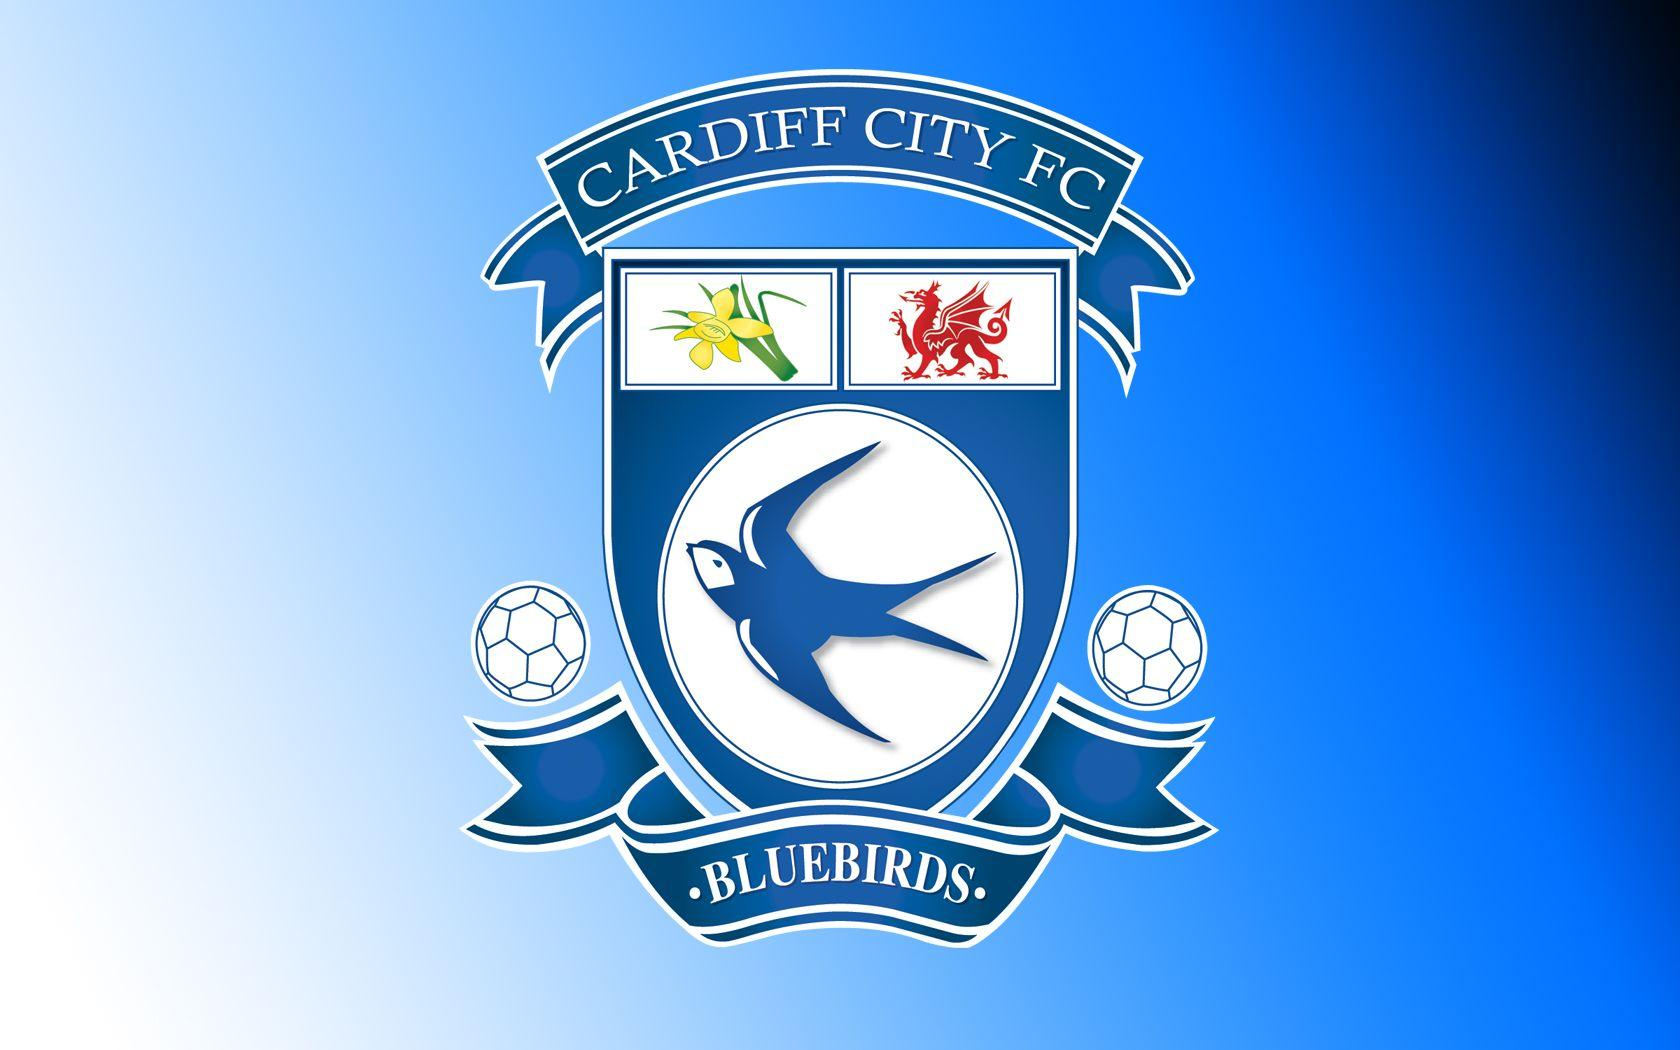 Cardiff City FC Logo Wallpaper HD | Wallpapers | Pinterest | Cardiff ...